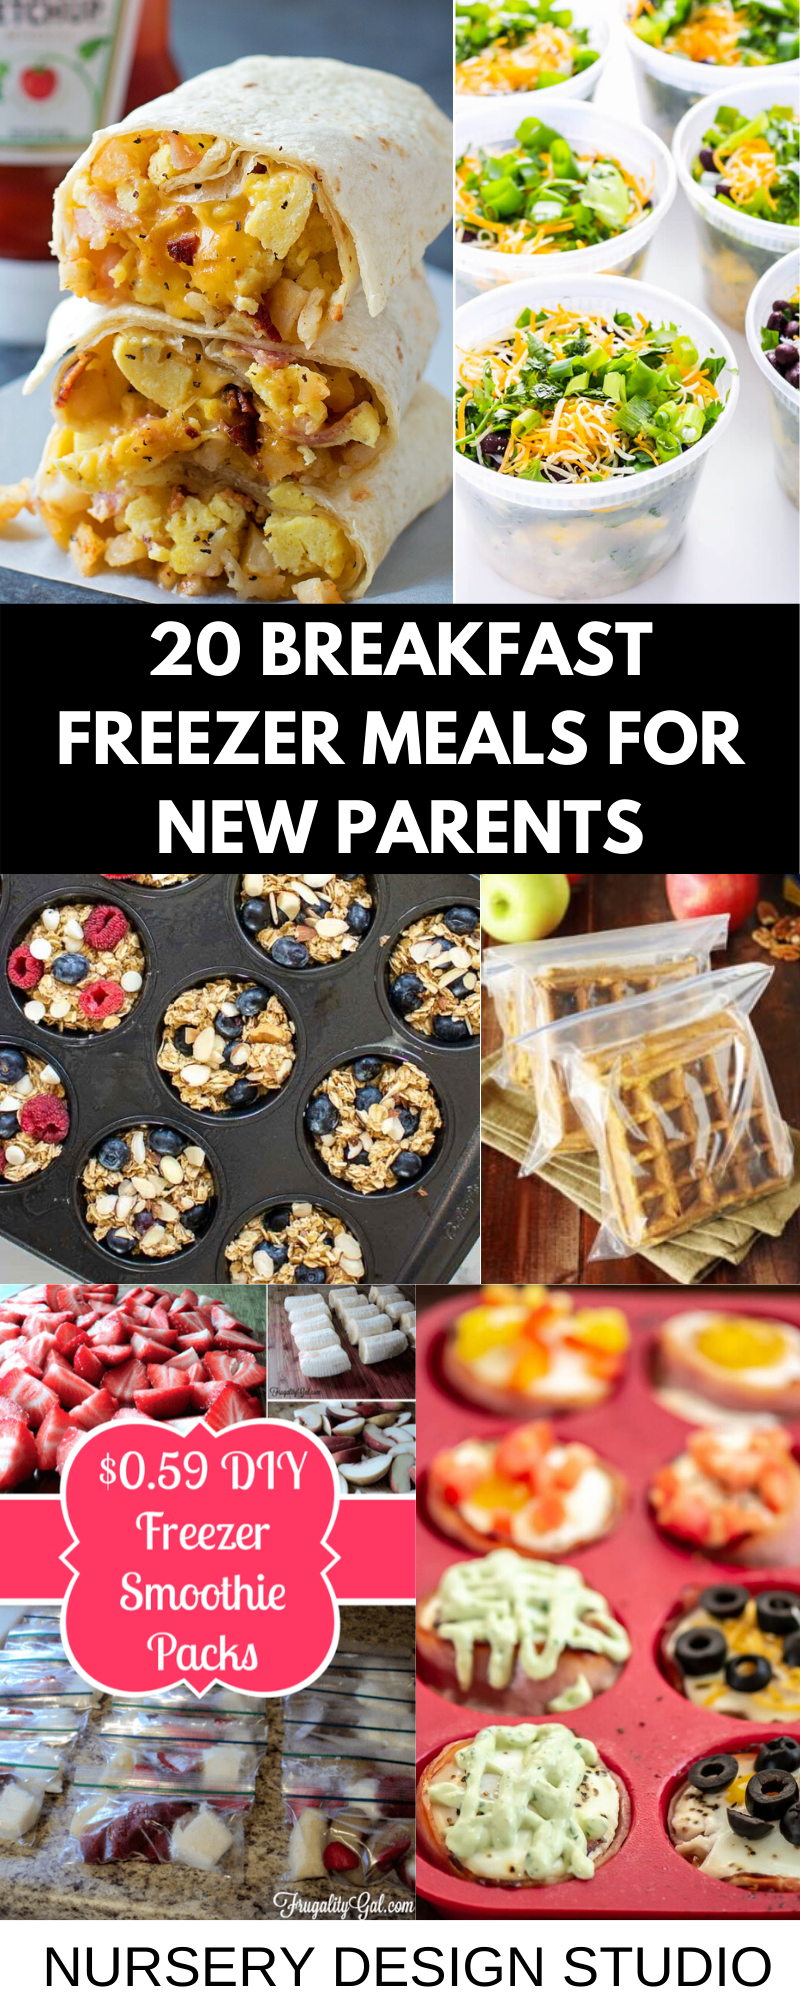 EAST FREEZER MEALS BEFORE BABY COMES